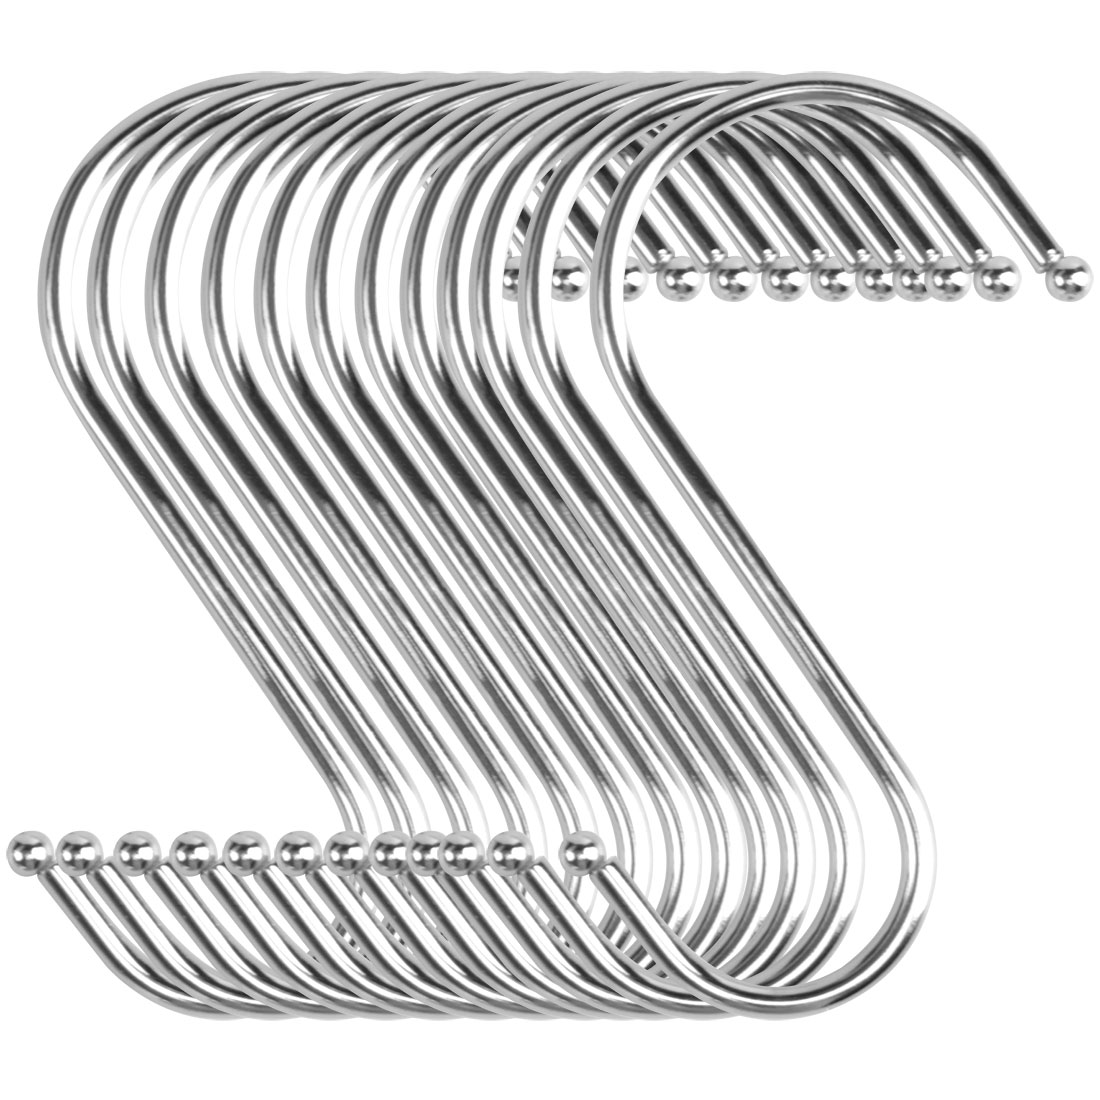 12pcs S Shaped Hook Stainless Steel for Kitchen Hat Utensil Pot Holder